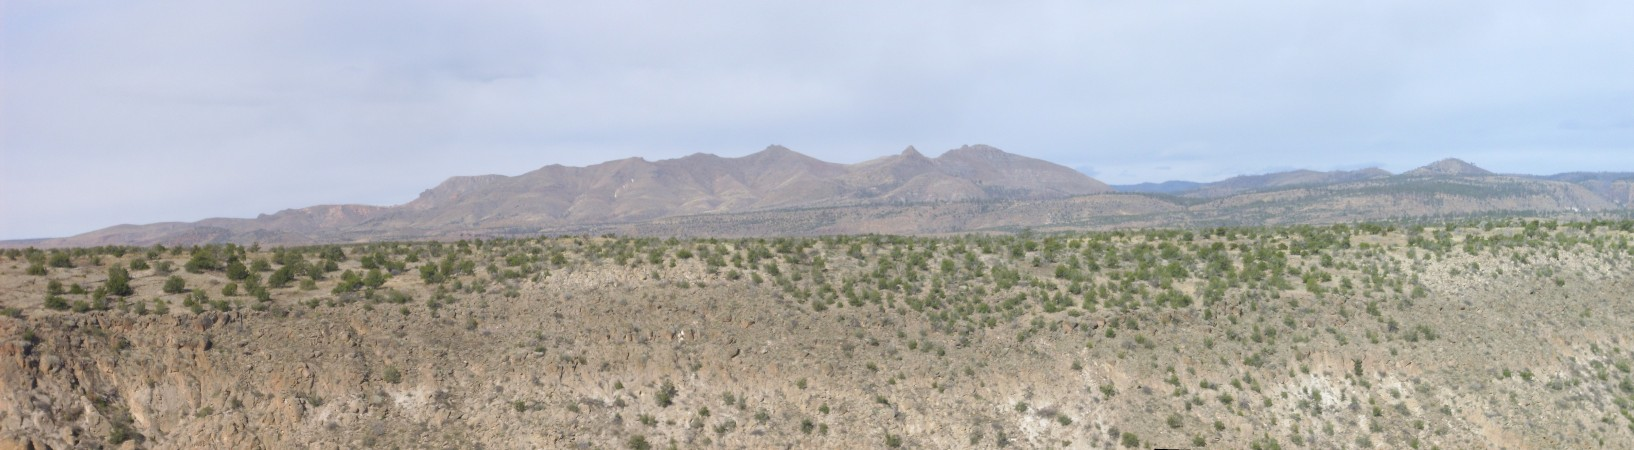 Panorama of San Miguel         Mountains from the east